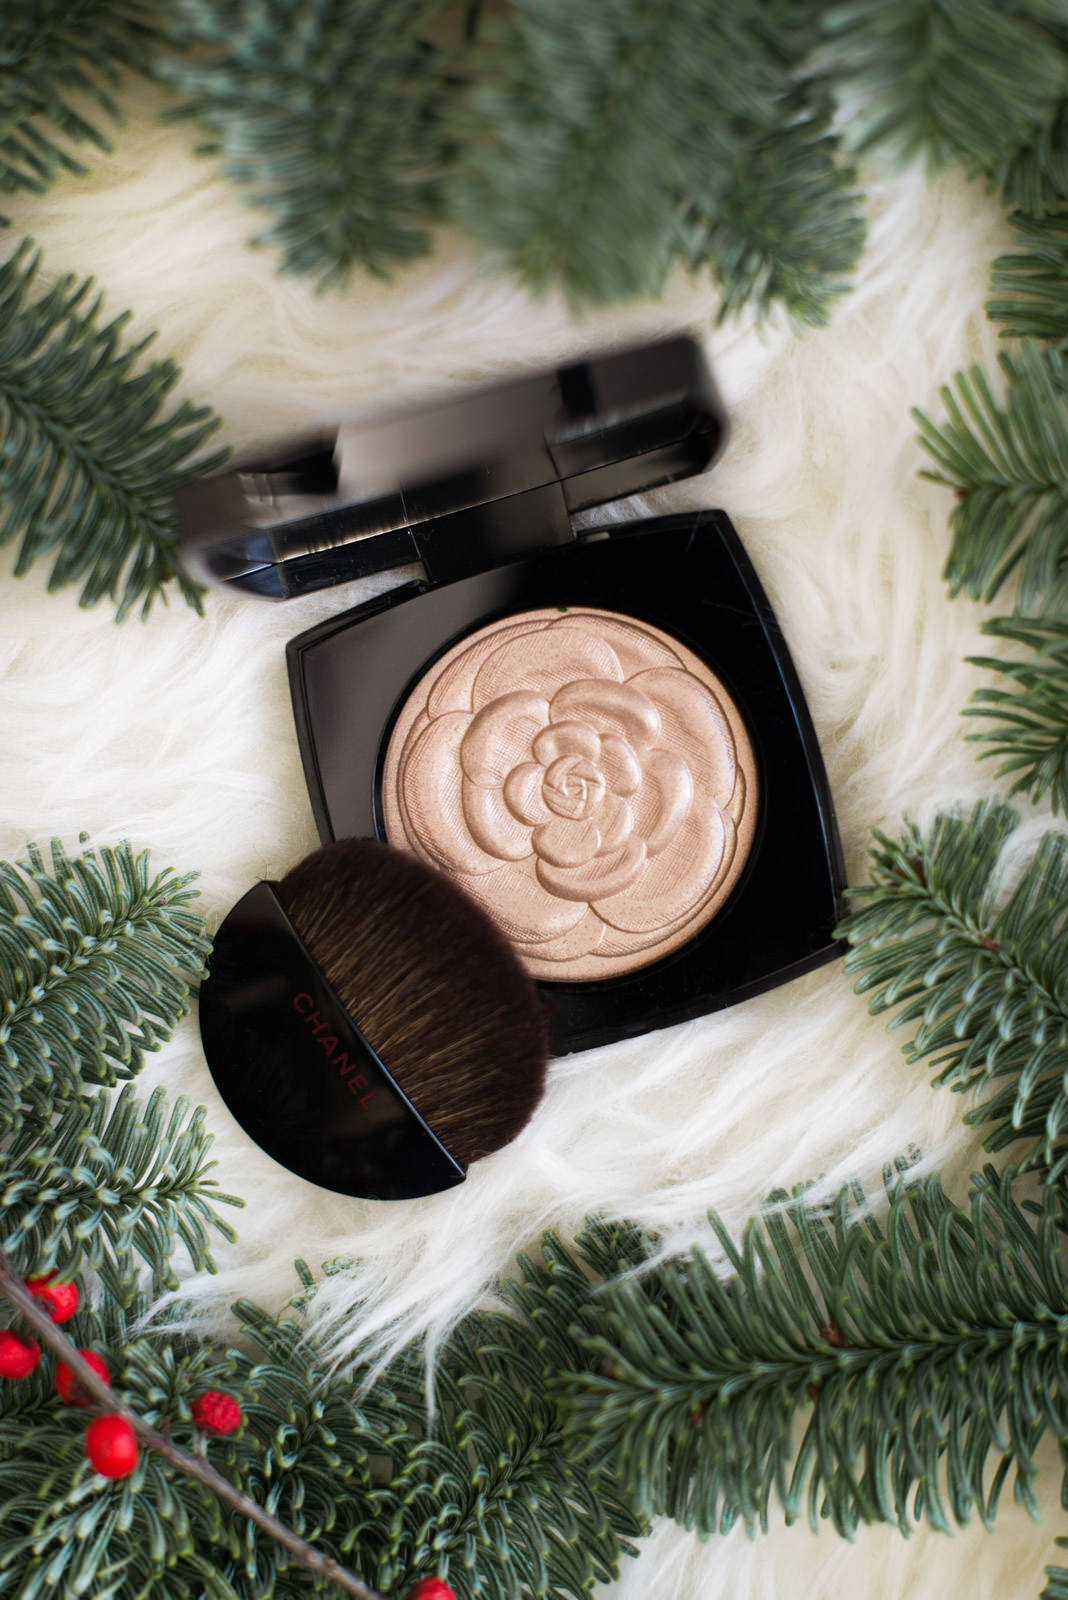 Blog-Mode-And-The-City-Lifestyle-Cinq-Petites-Choses-200-poudre-illuminatrice-chanel-2